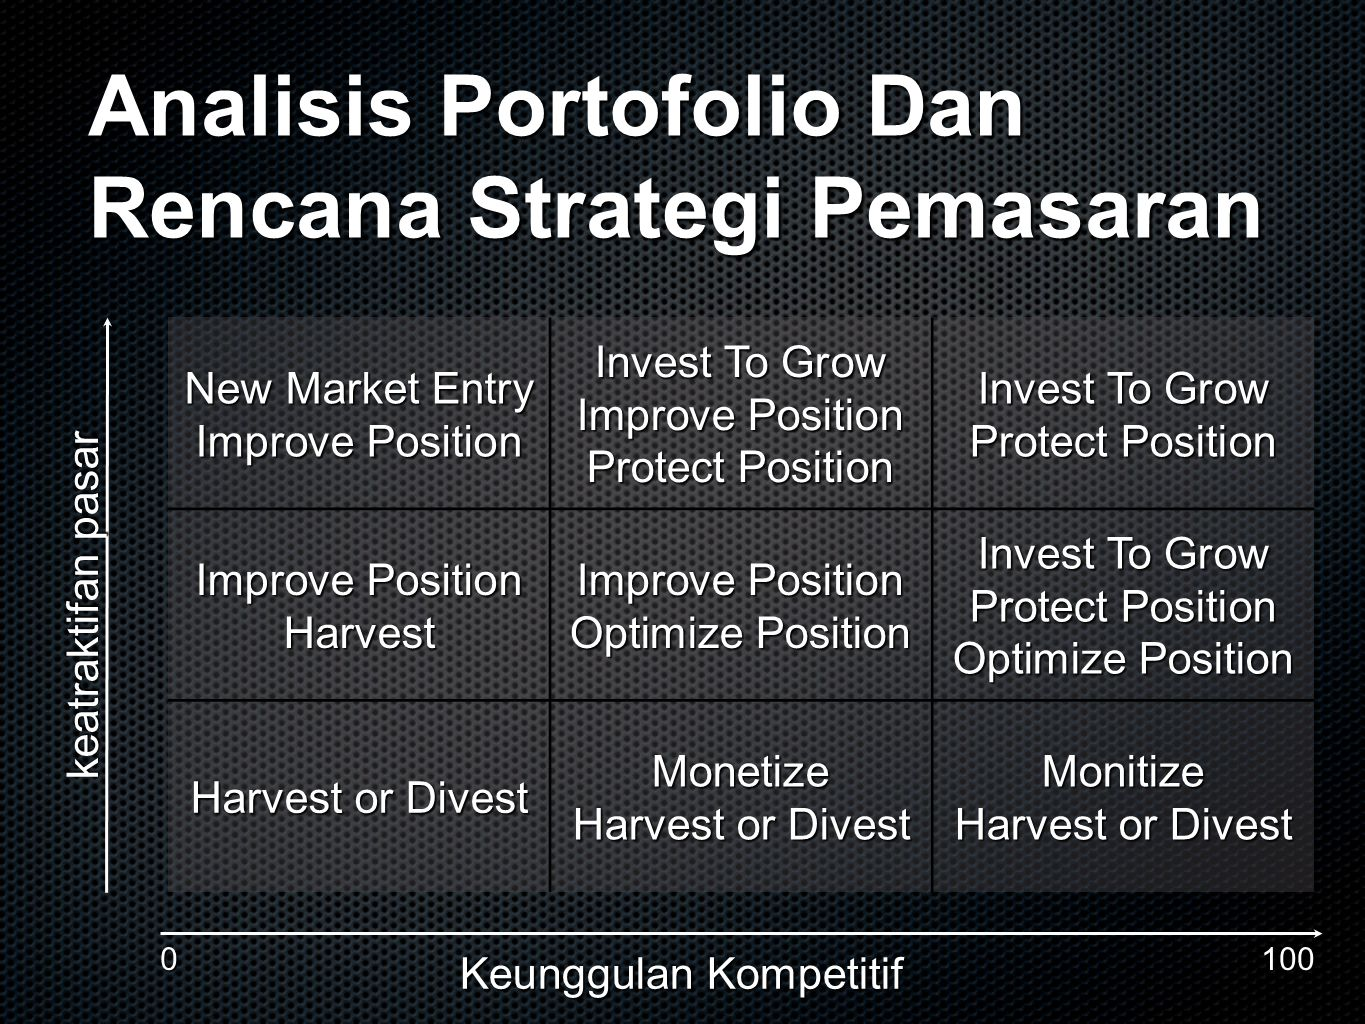 Analisis Portofolio Dan Rencana Strategi Pemasaran New Market Entry Improve Position Invest To Grow Improve Position Protect Position Invest To Grow P